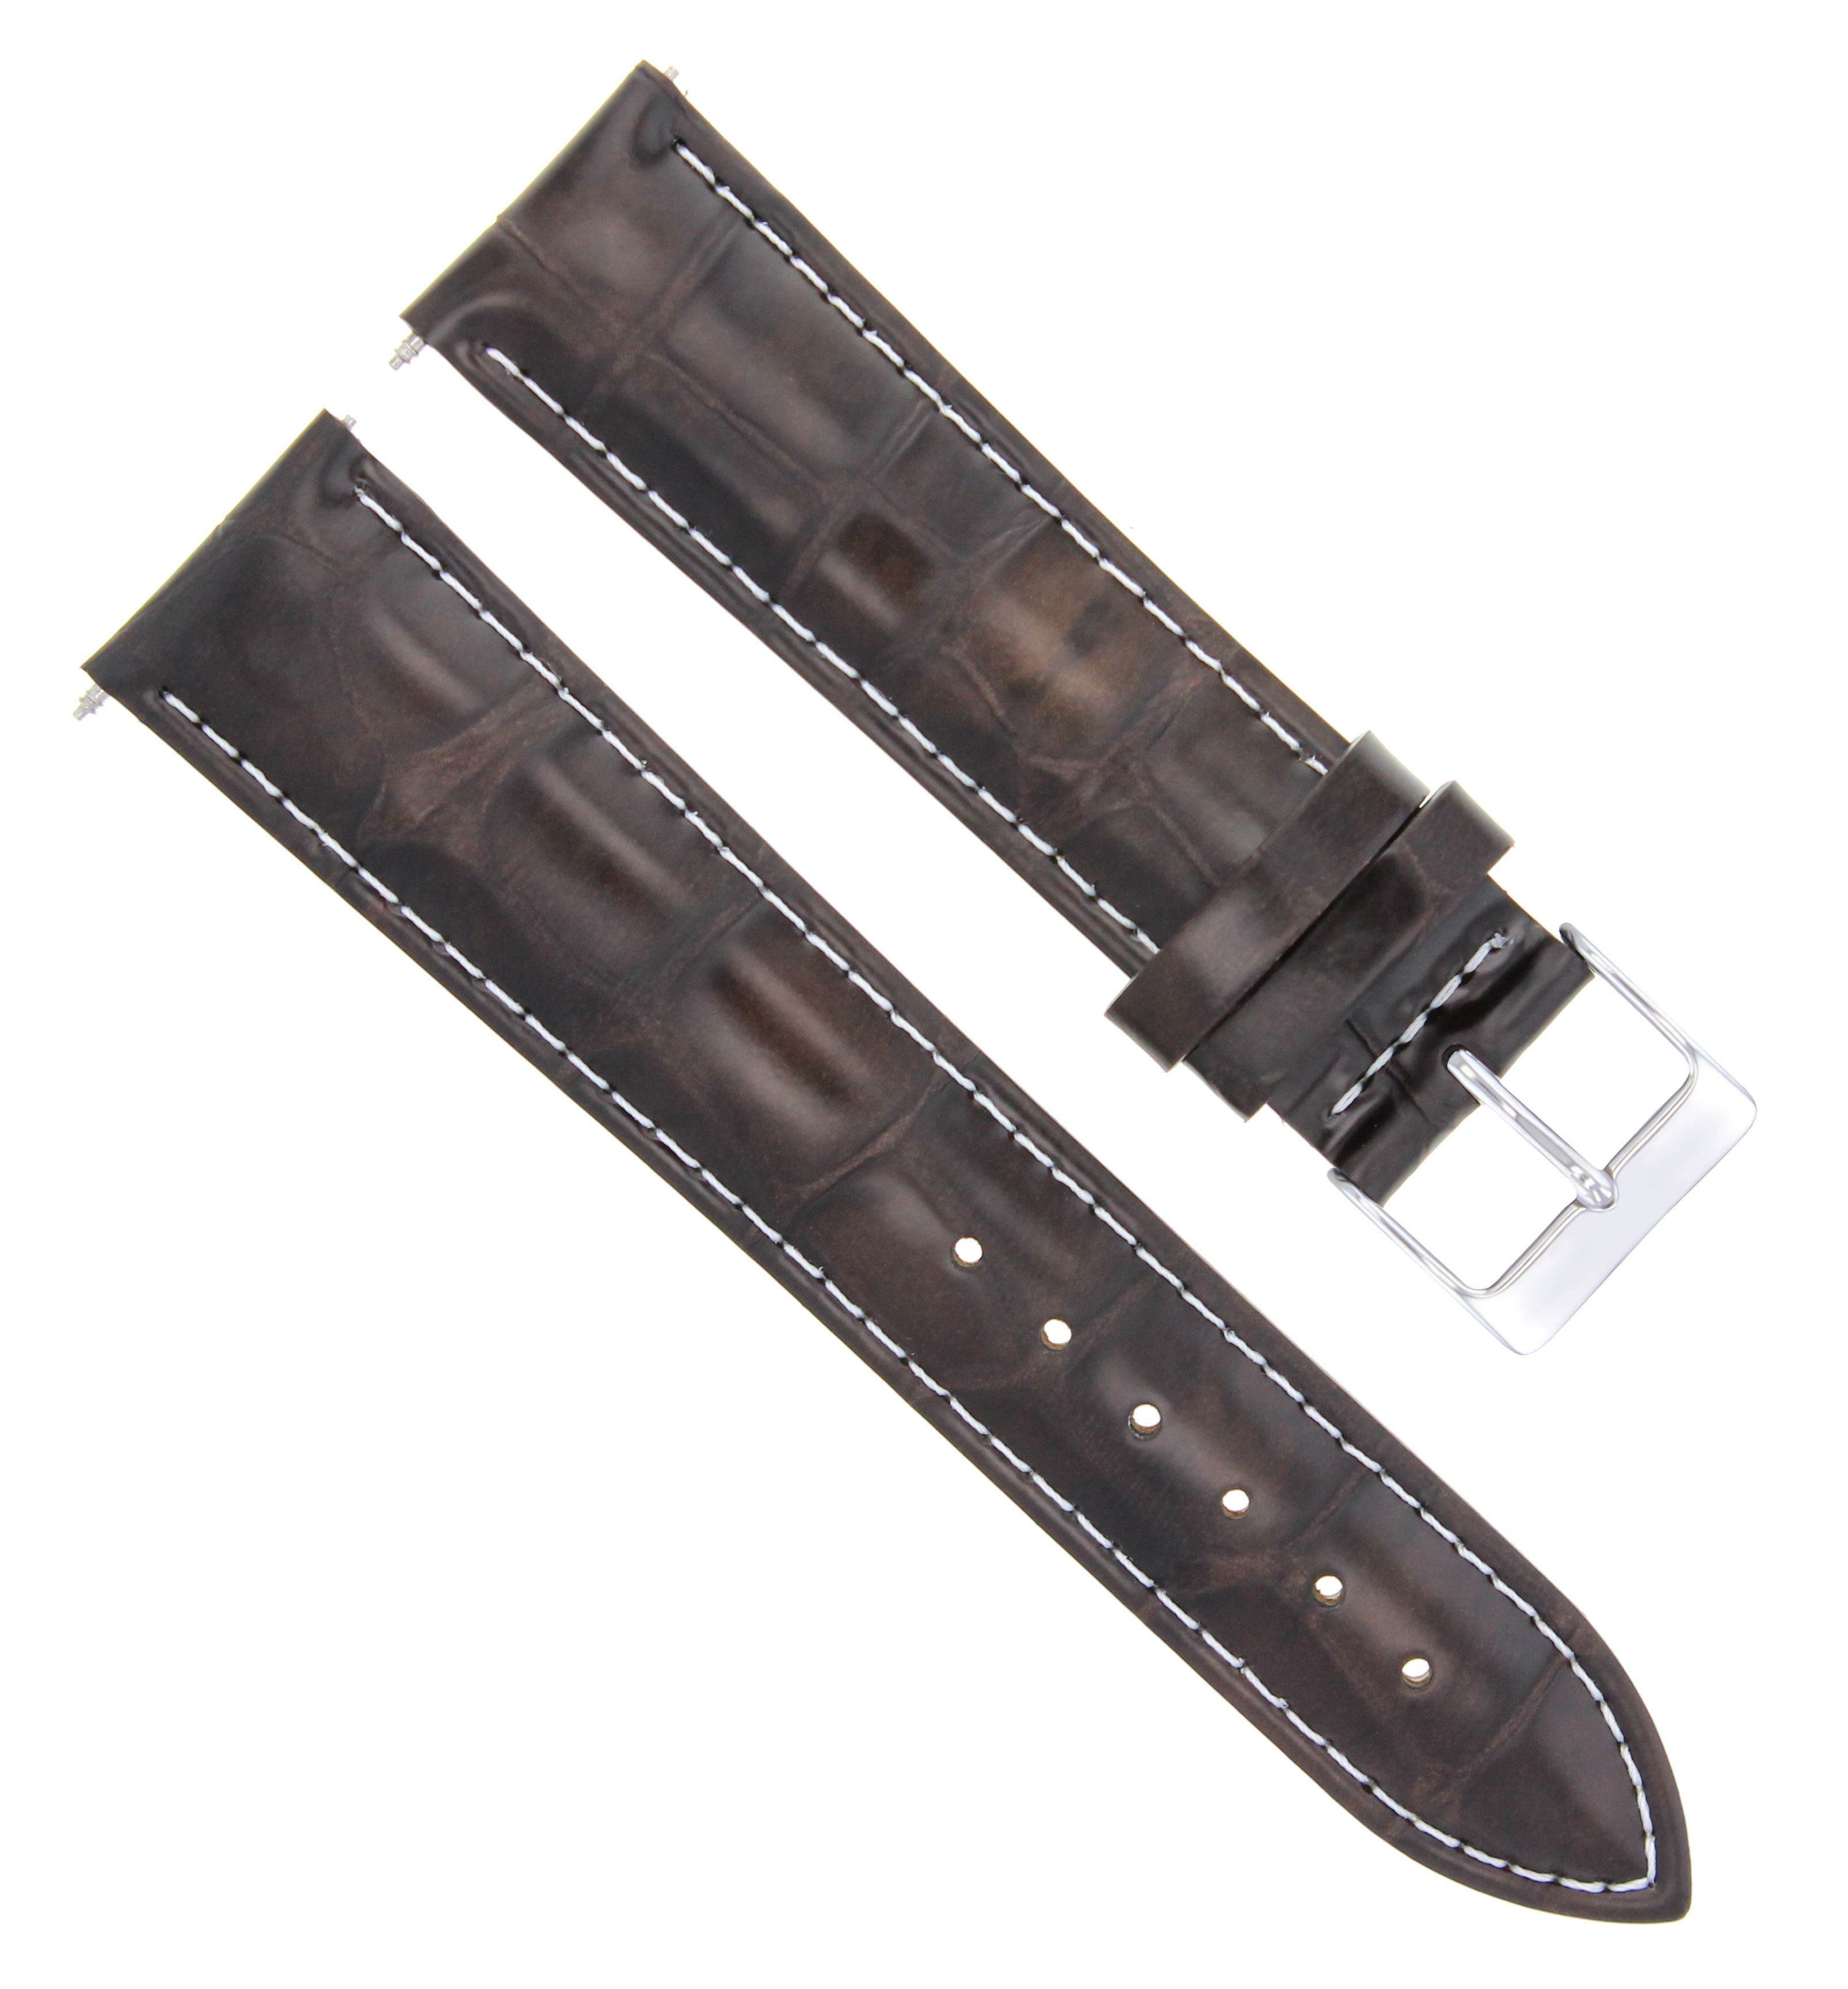 19/16 MM LEATHER WATCH STRAP BAND FOR 34MM ROLEX DATE AIR KING WATCH D/BROWN WS